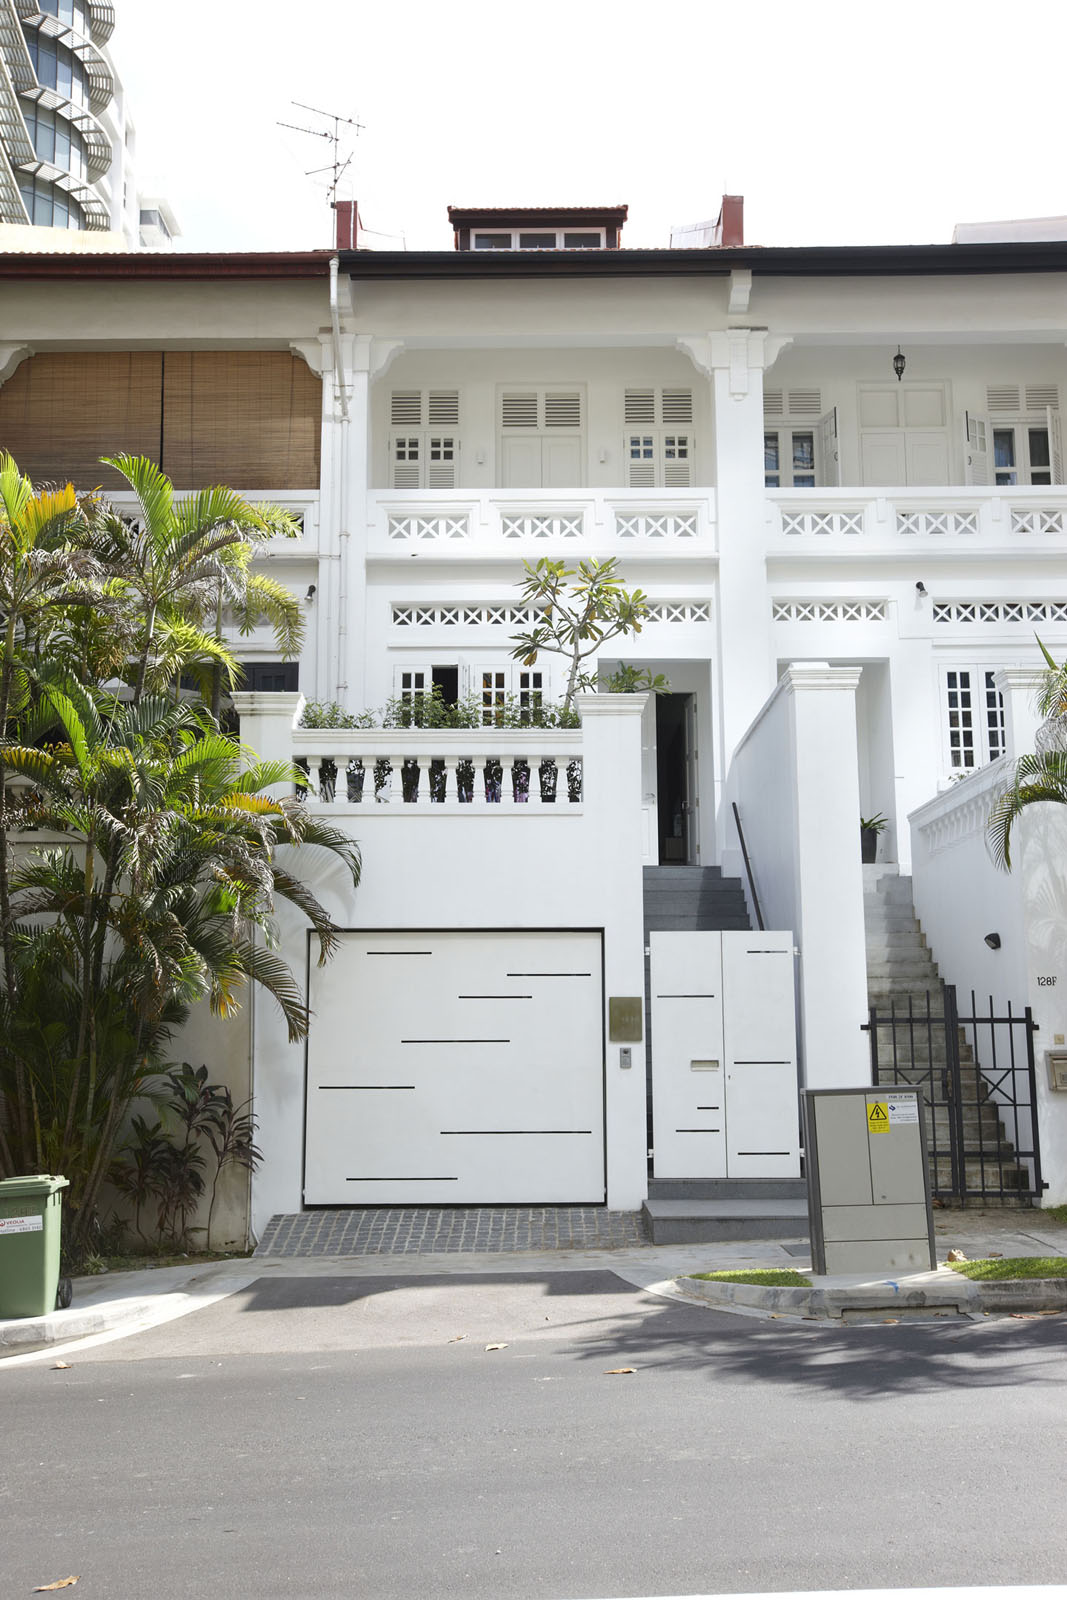 128G Cairnhill Road Singapore